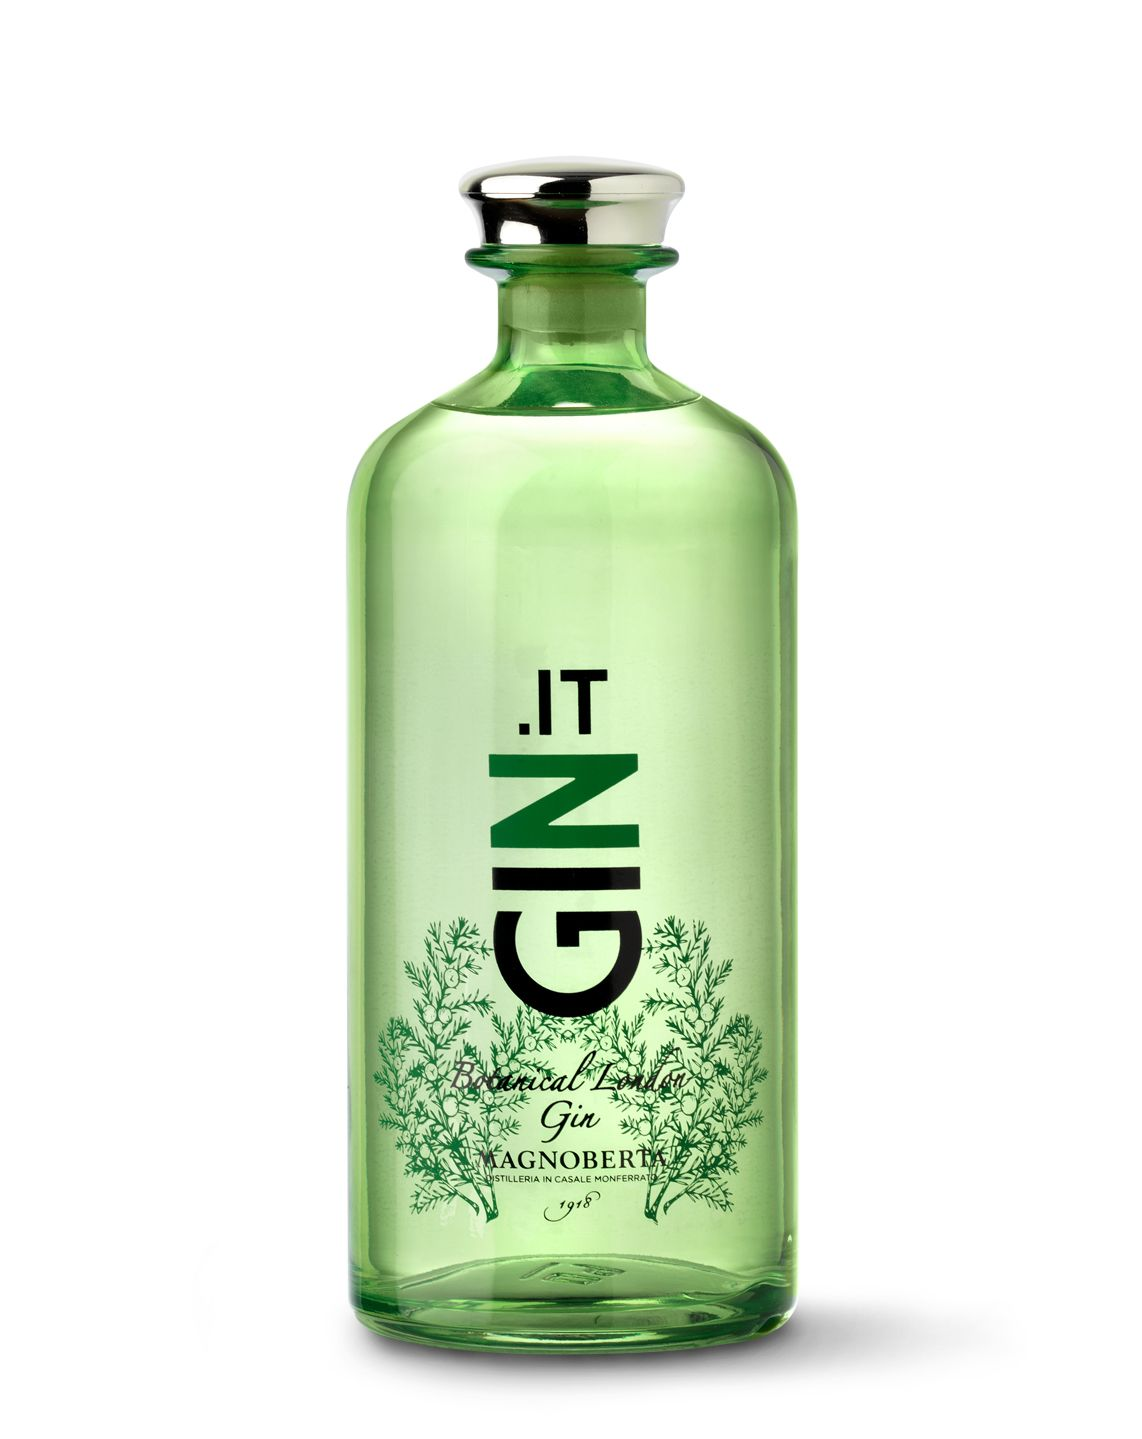 Gin.it - Botanical London Gin